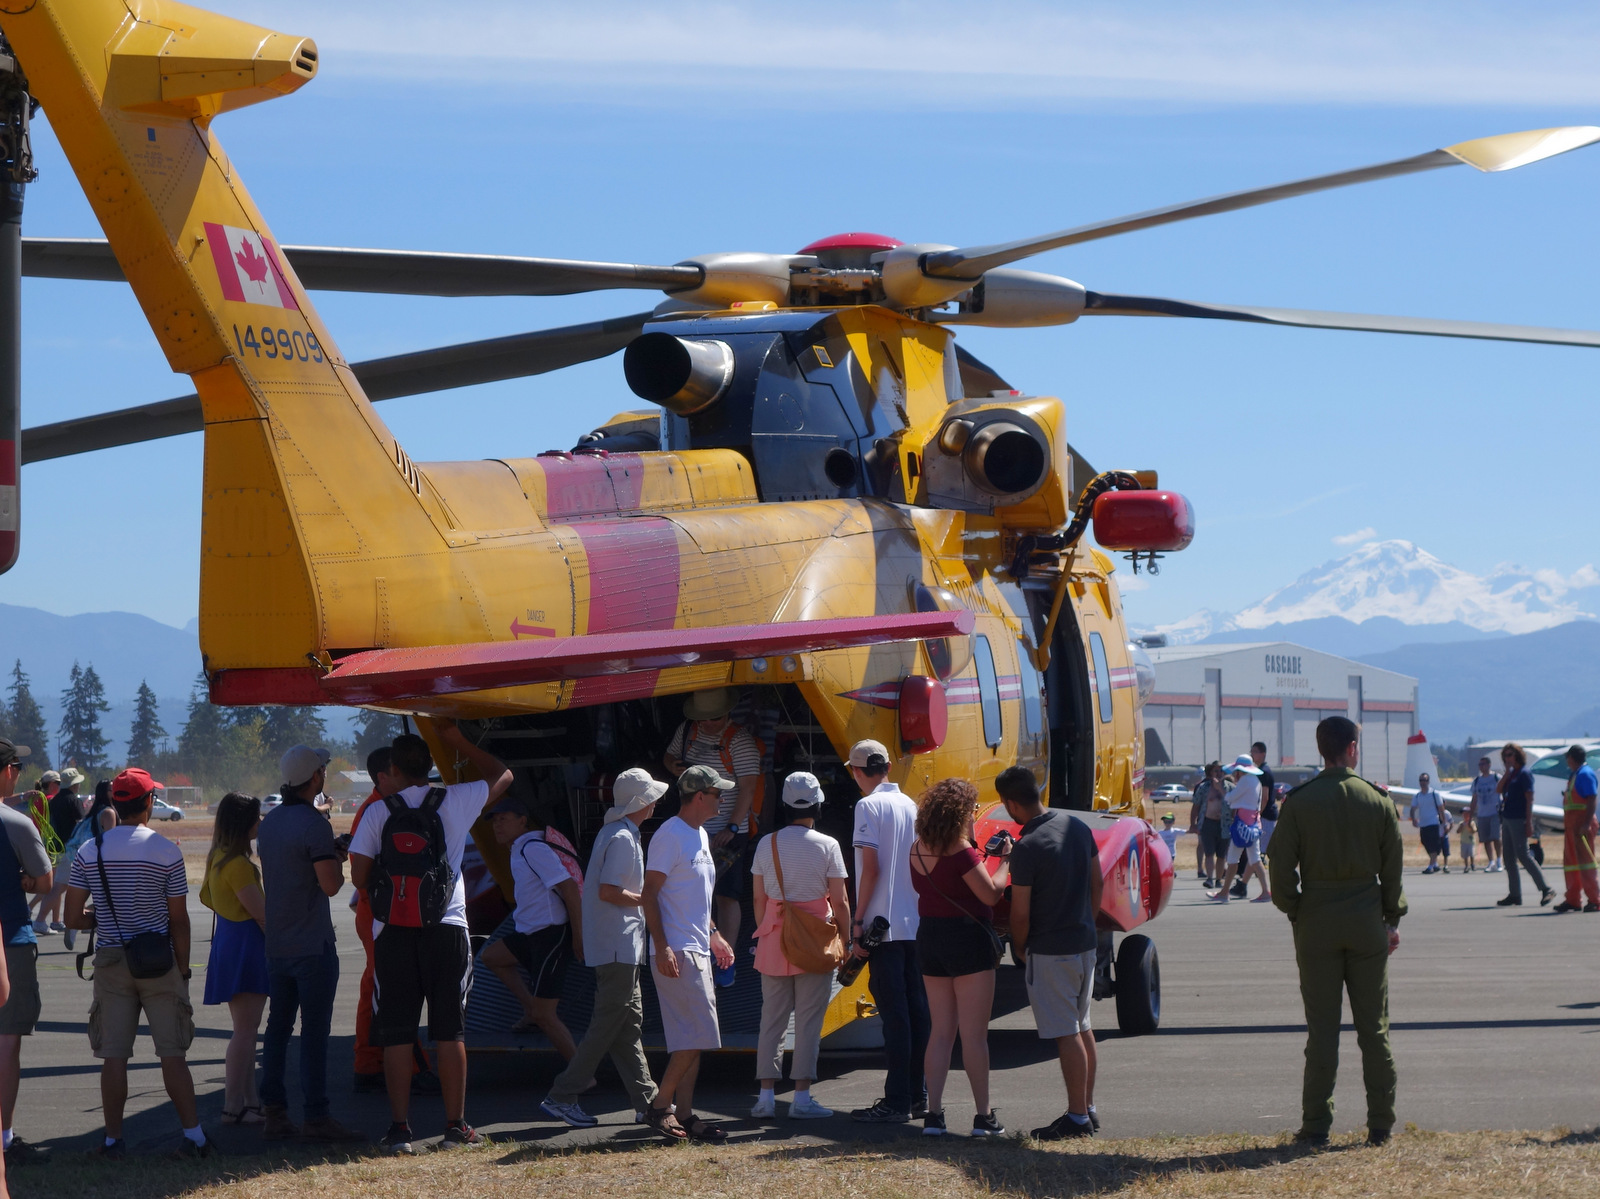 Crowds visit the RCAF Cormorant at the Abbotsford Airshow